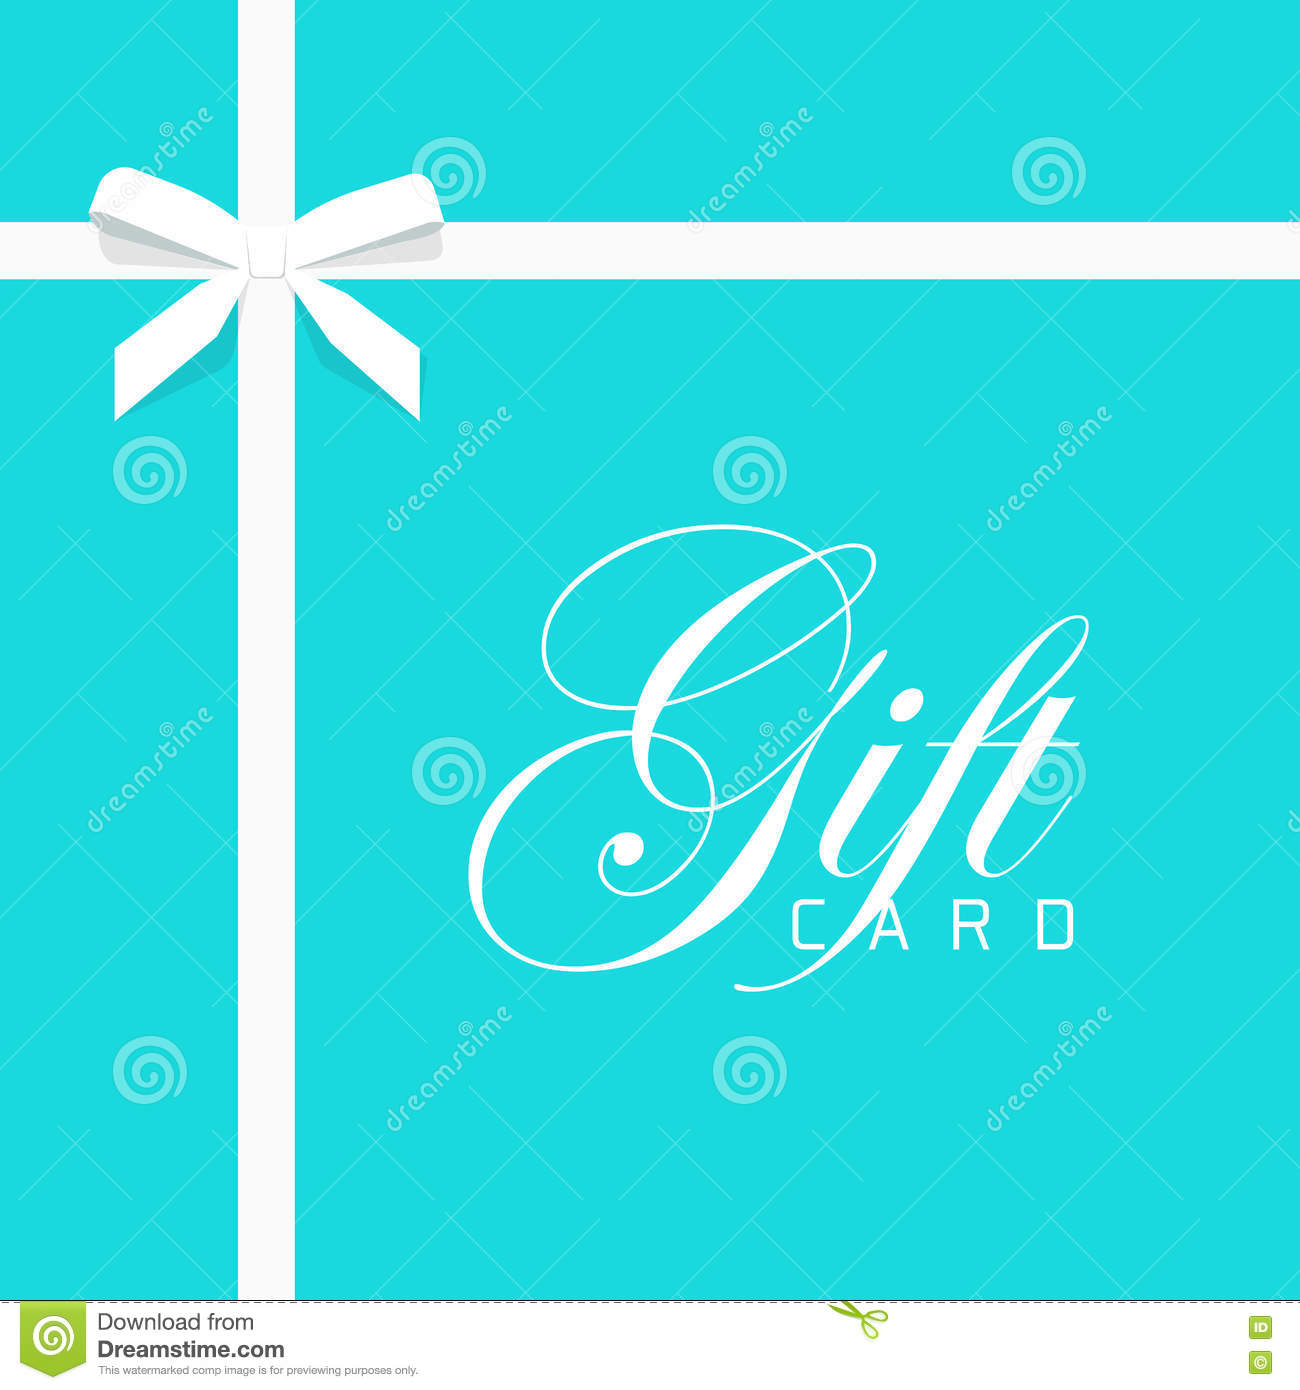 Gift Card Vector Illustration On Blue Bow With White Ribbon Stock